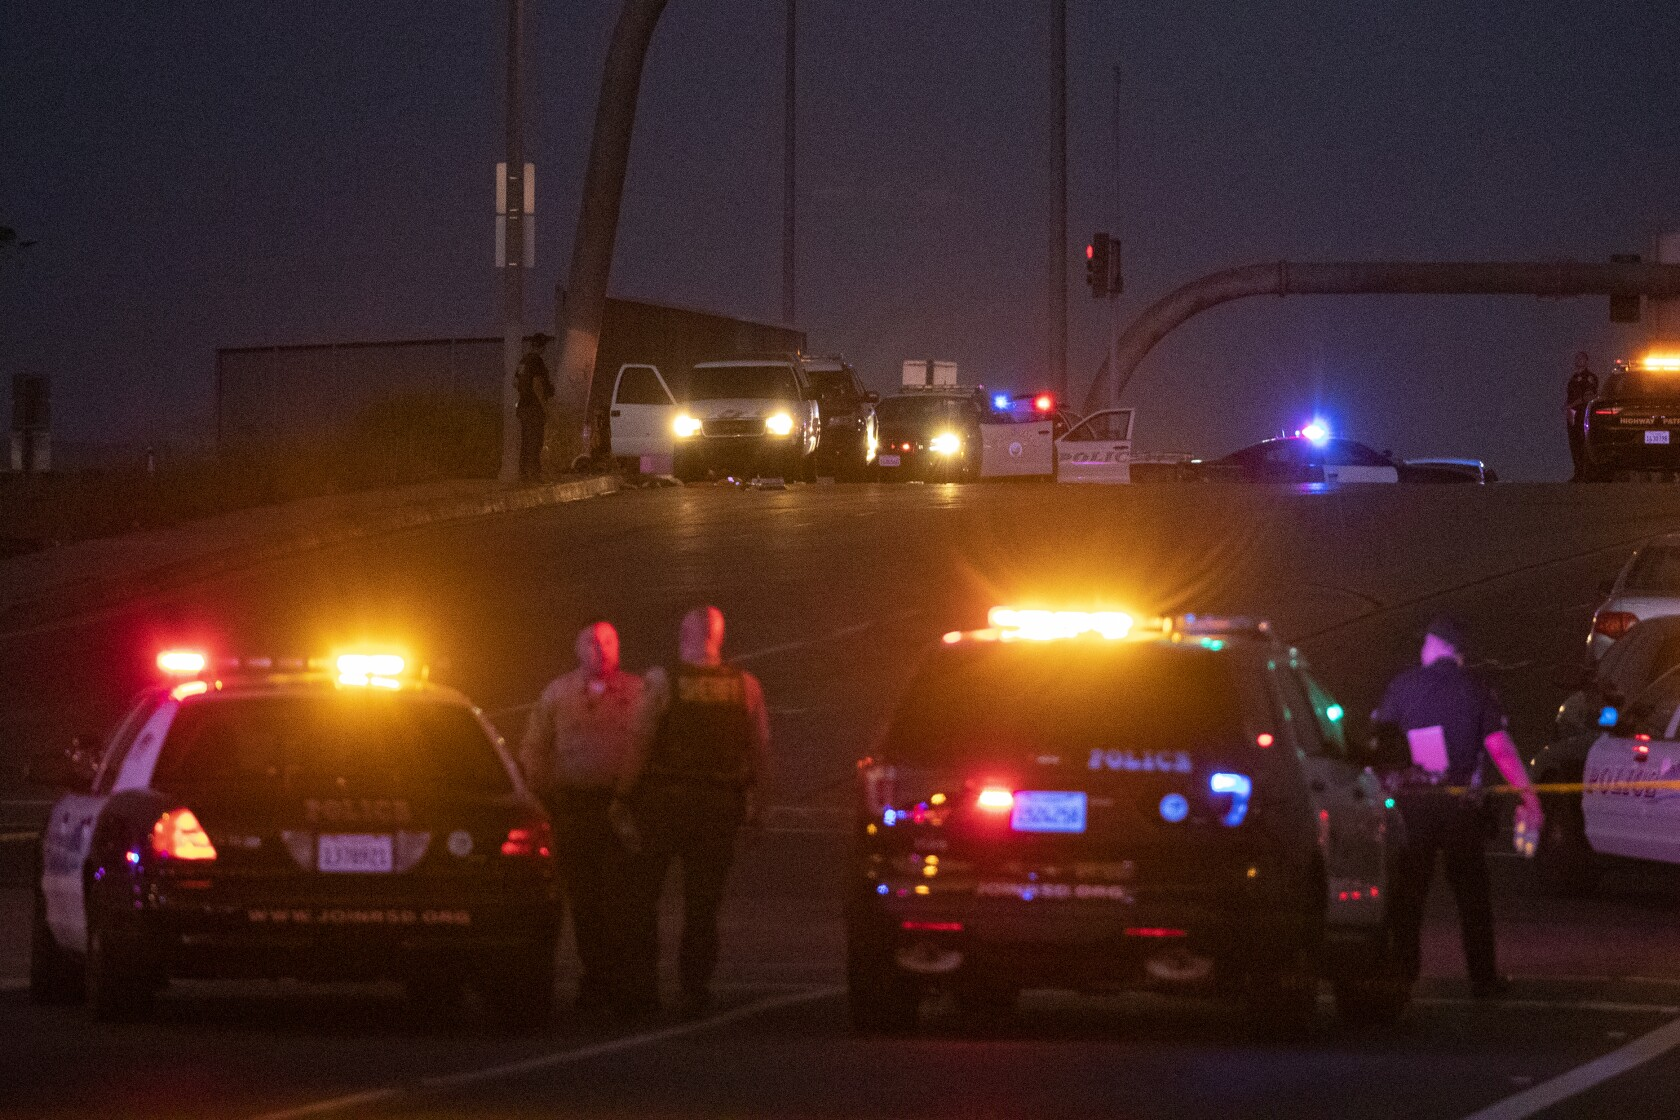 Riverside traffic stop led to fatal shooting of CHP officer